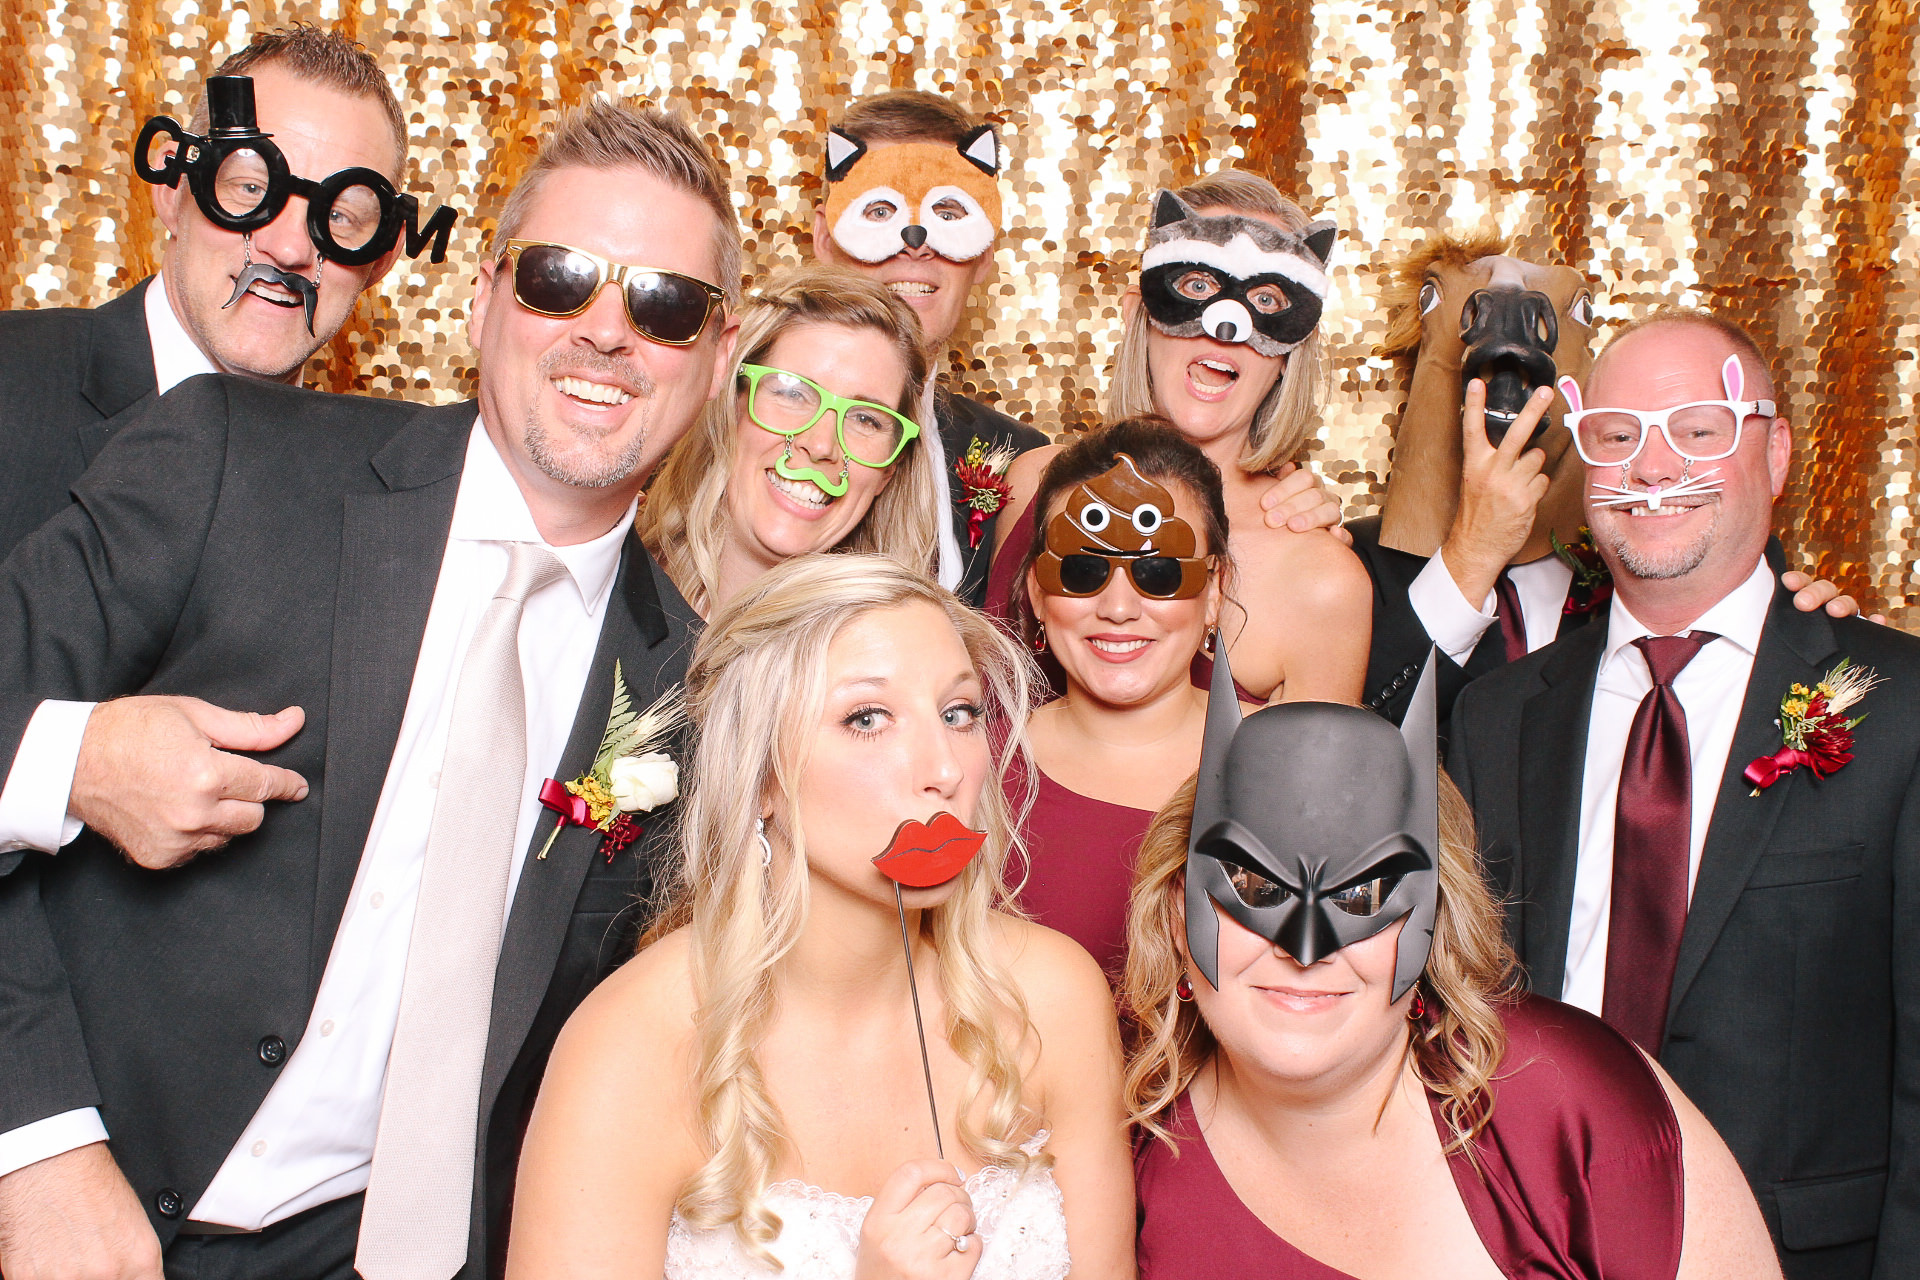 Image result for wedding Photo-booth